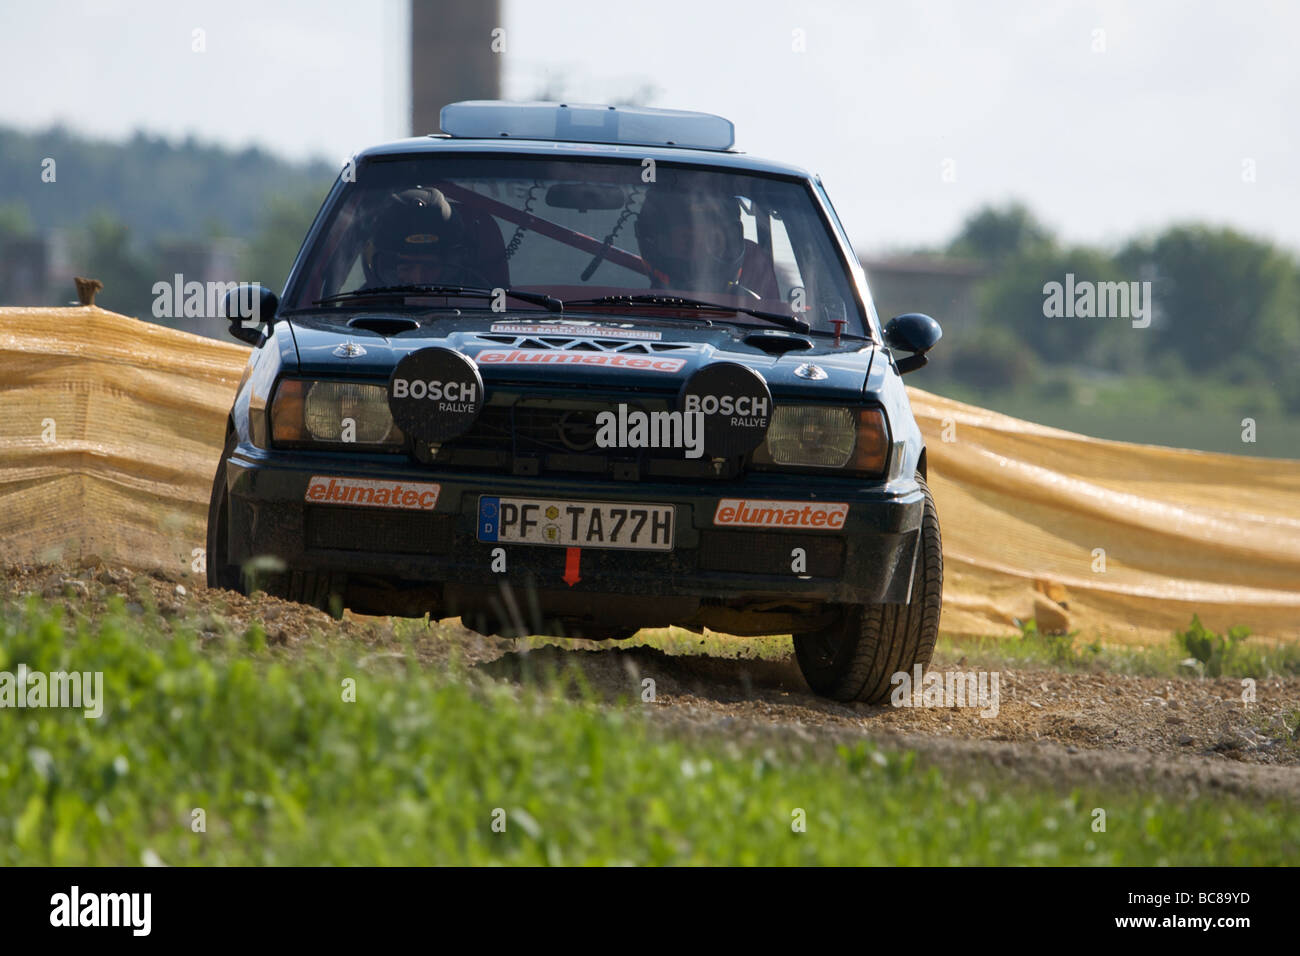 AvD Rallye Baden-Württemberg 2009 - Historic Car Race - Stock Image